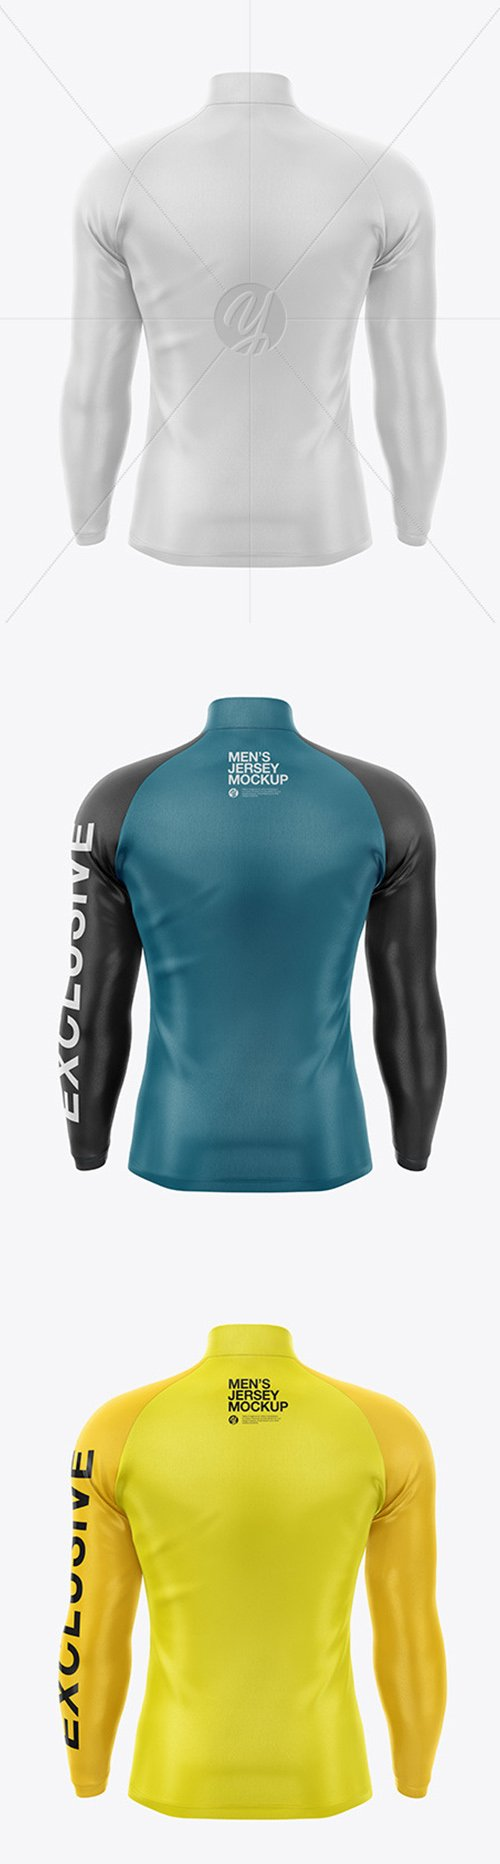 Mens Jersey With Long Sleeve Mockup - Back View 49454